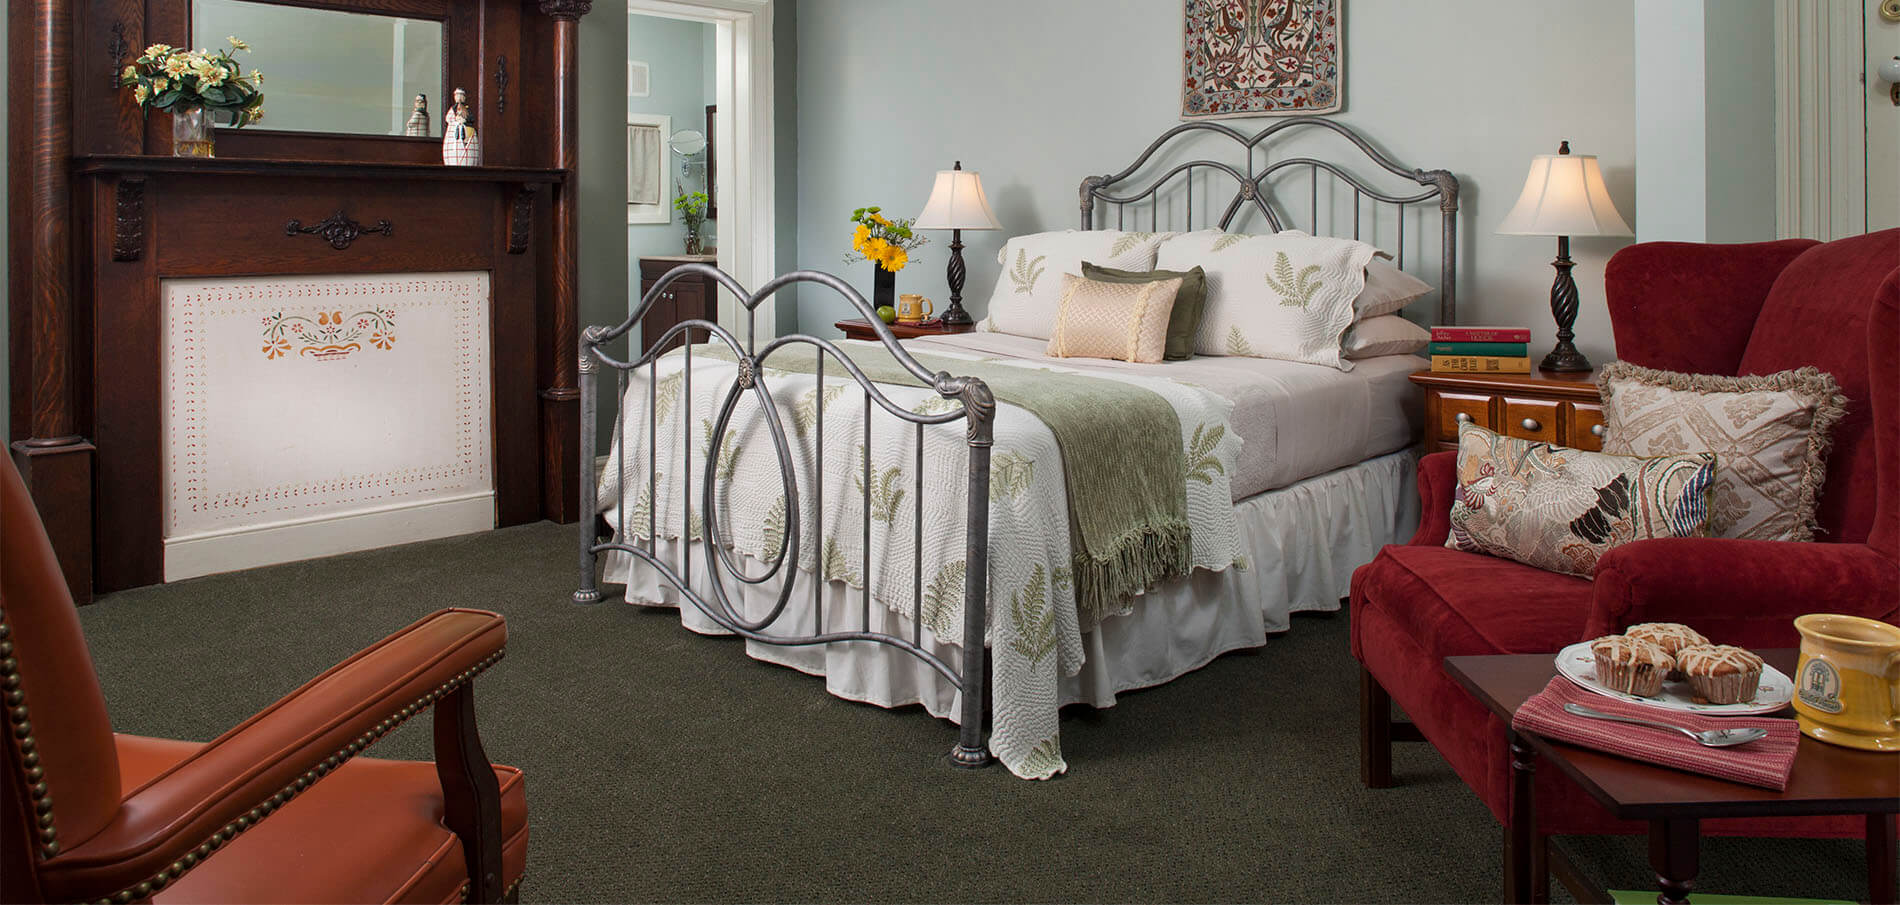 gray wrought iron bed with white and soft green linens next to antique wood and mirror mantel against neutral soft green walls